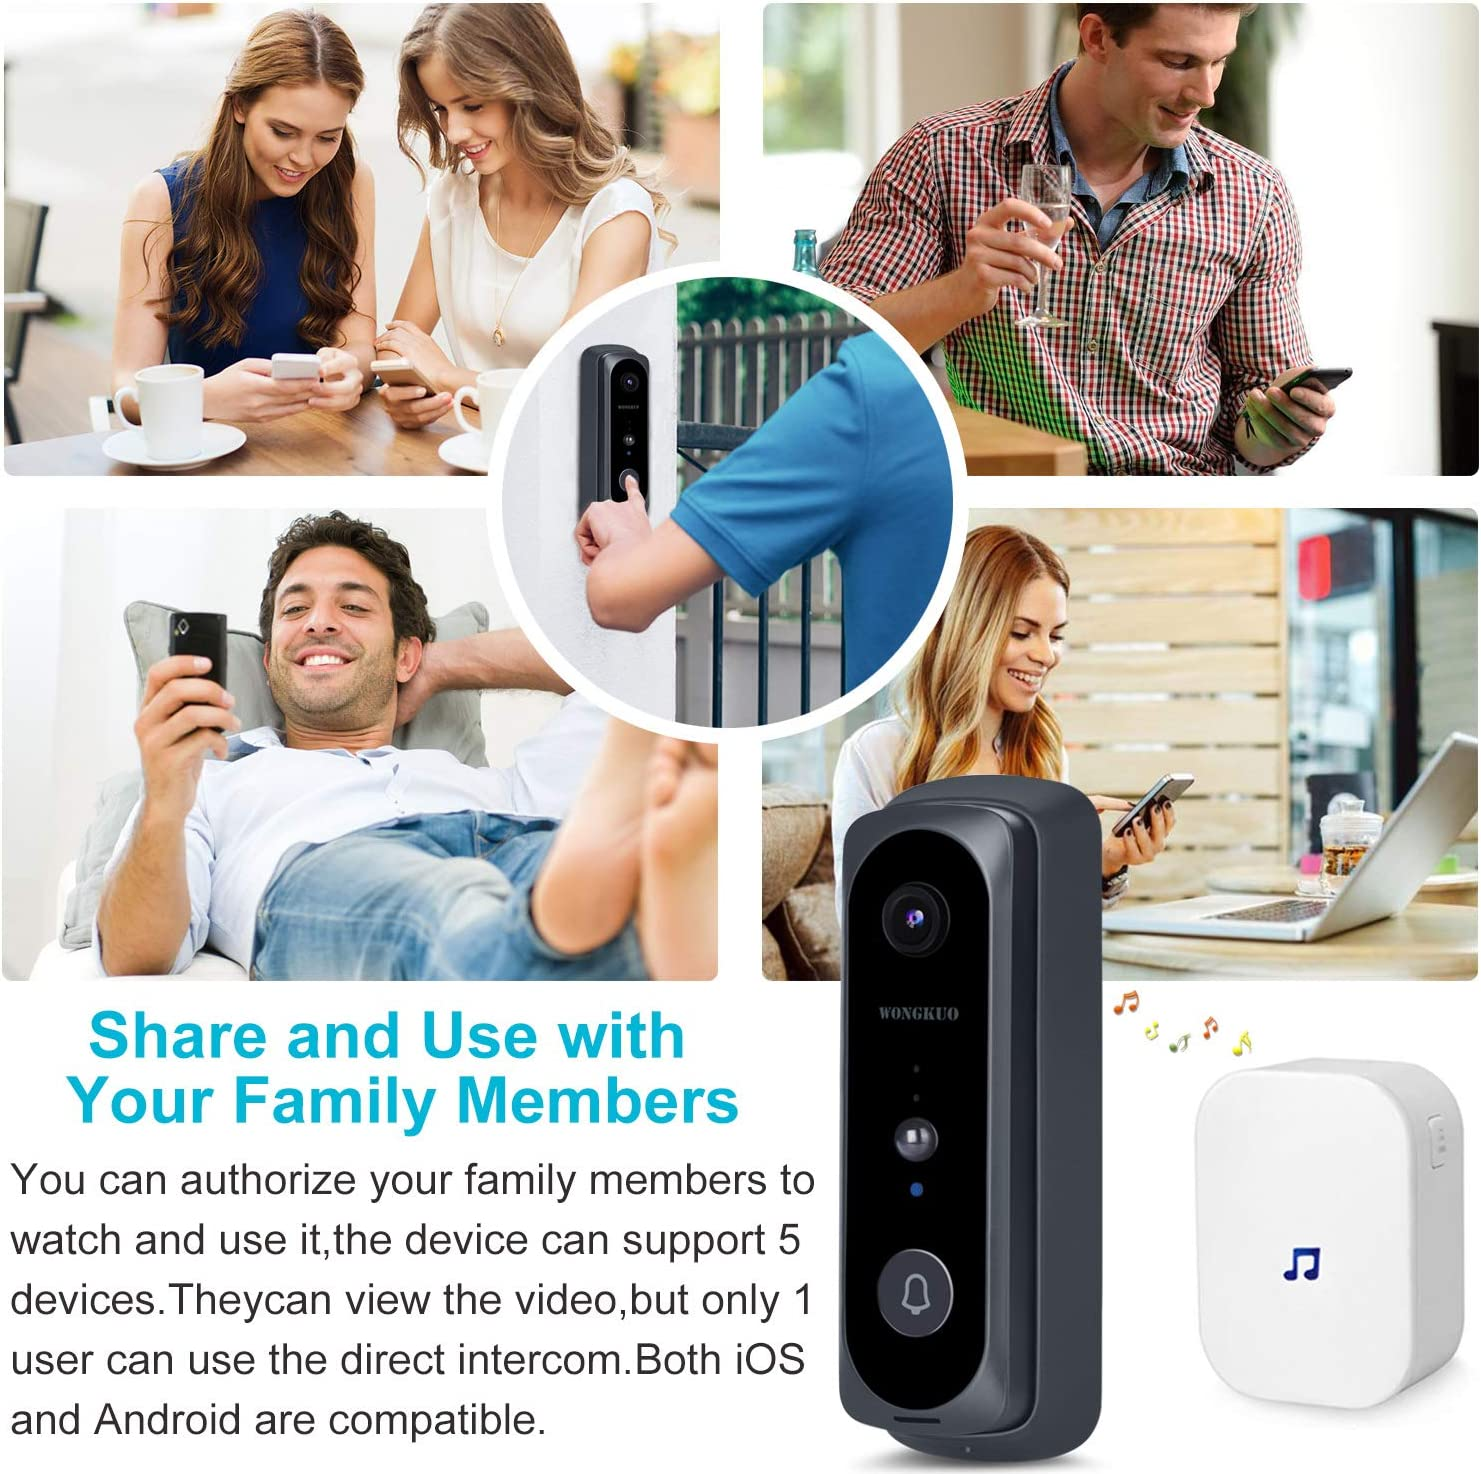 Video Doorbell WONGKUO Wireless Video Doorbell Camera 720P HD 166/° Security Smart WiFi Doorbells with Indoor Chime,2 Rechargeable Batteries,Motion Detection,Real-Time Video,Two-Way Talk,Night Vision